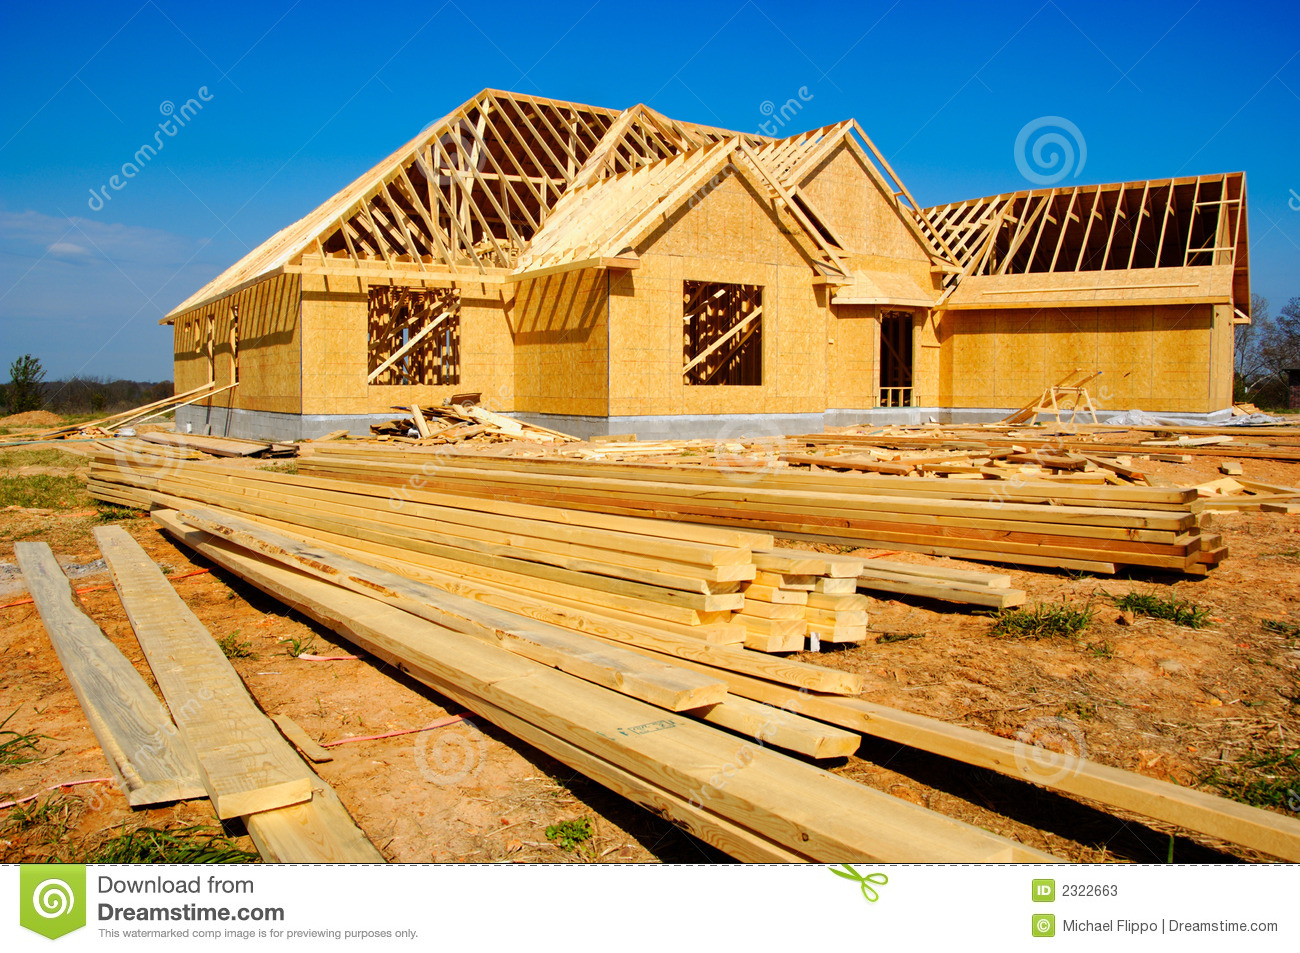 New house under construction stock photos image 2322663 for New house construction